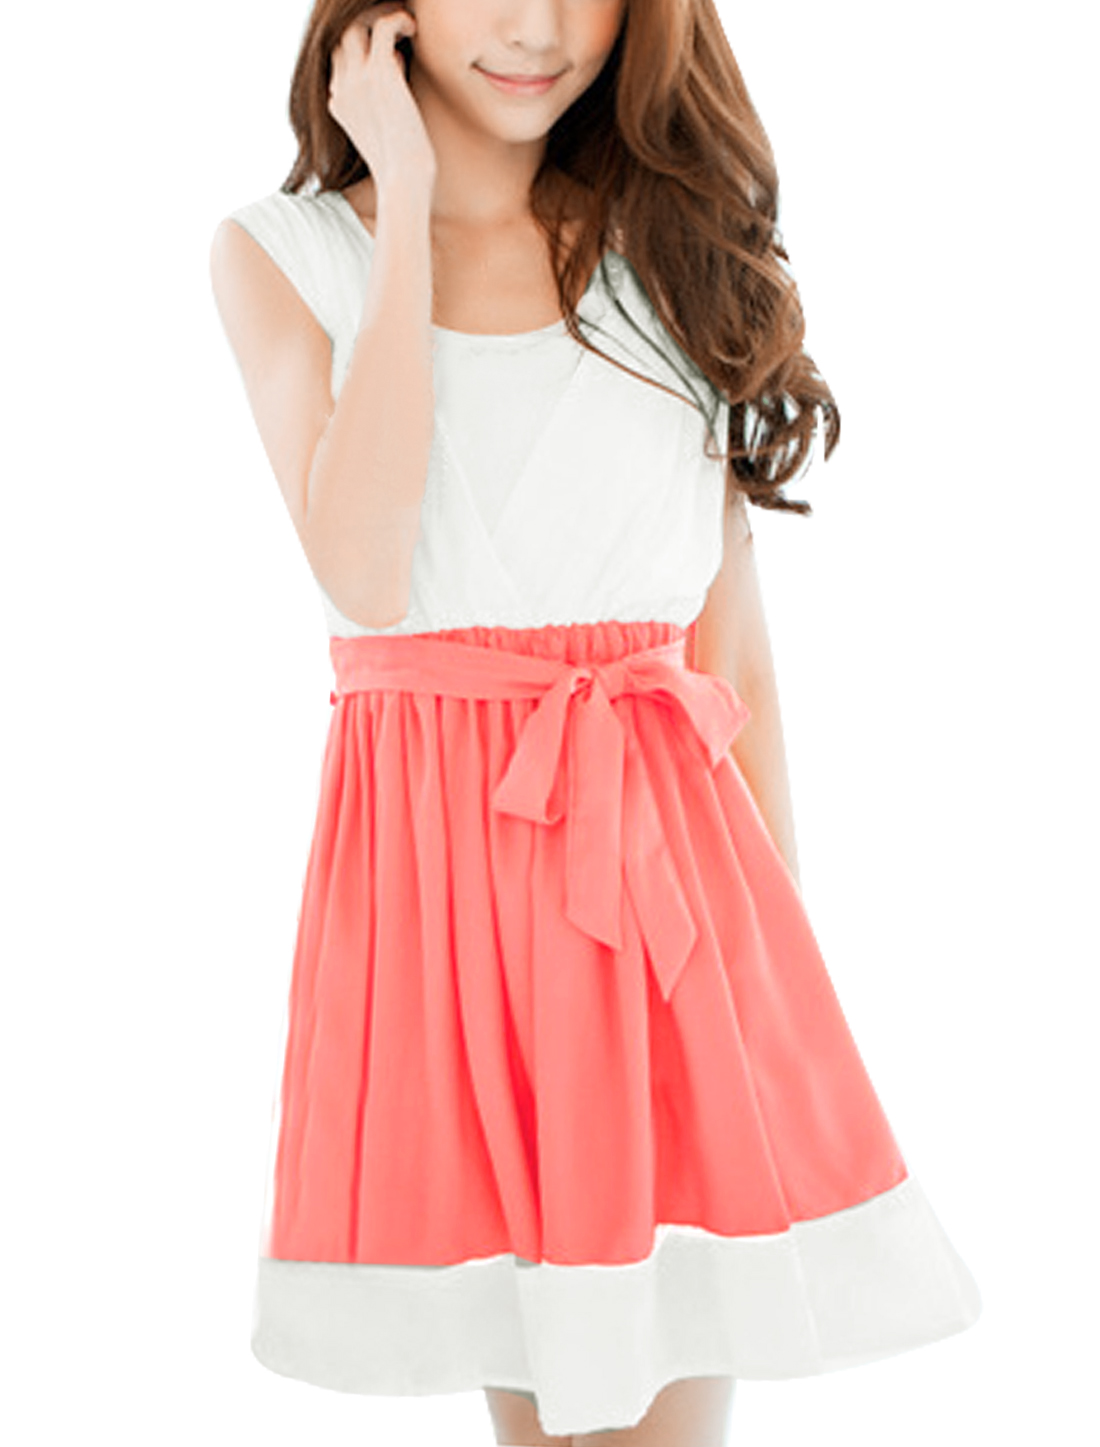 Women Newly Elastic Waist Belted Lined Watermelon Red White Dress w Tube Top XL